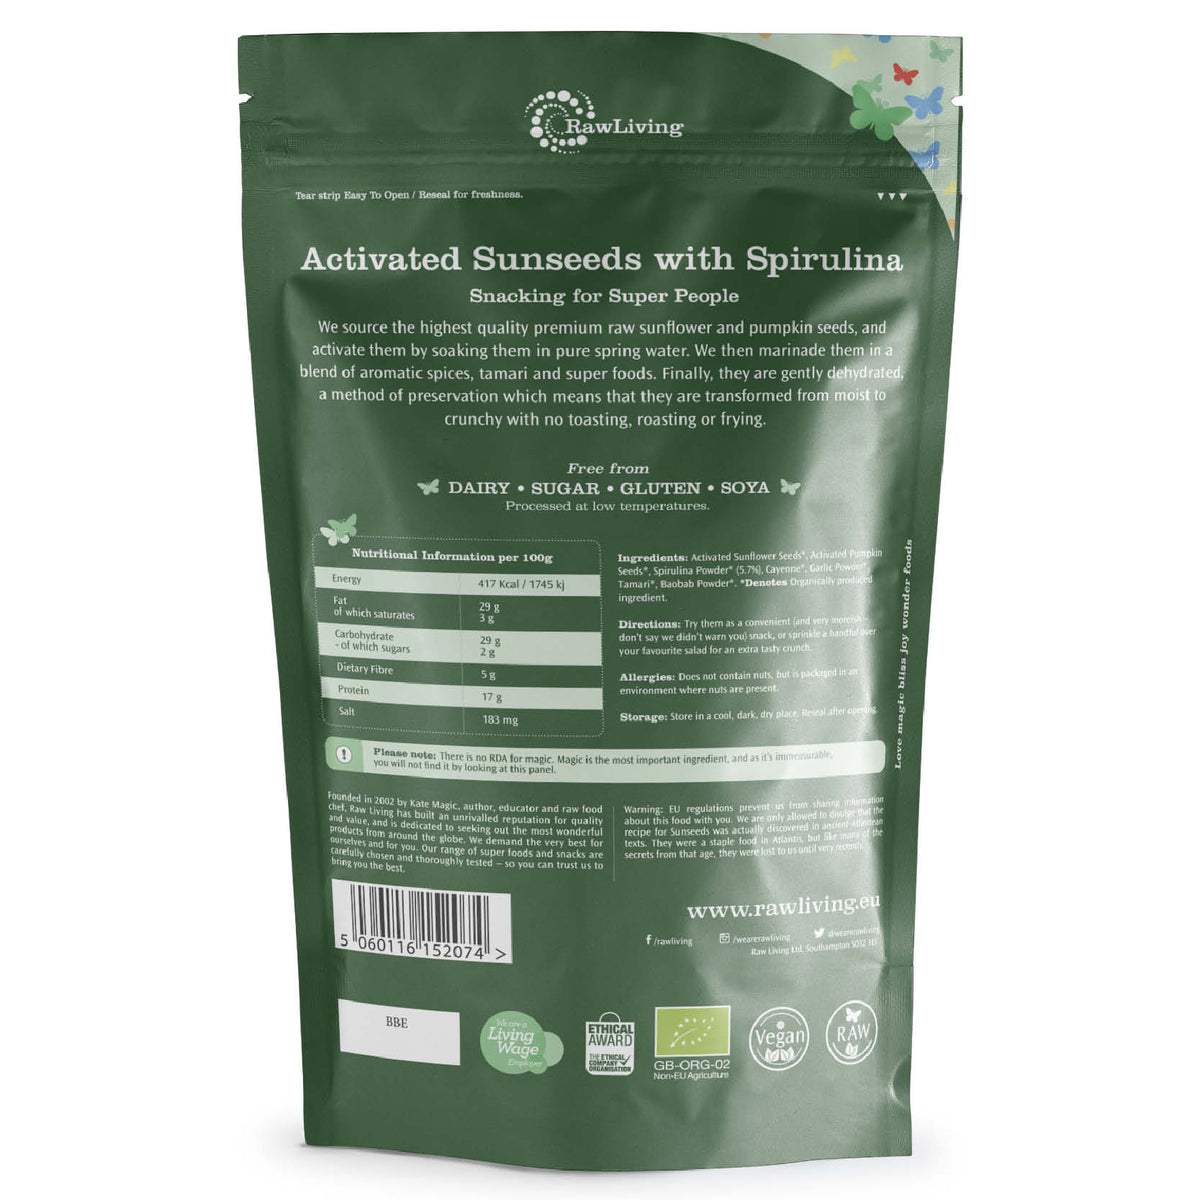 Activated Sunseeds with Spirulina - Organic (100g, 250g, 500g)